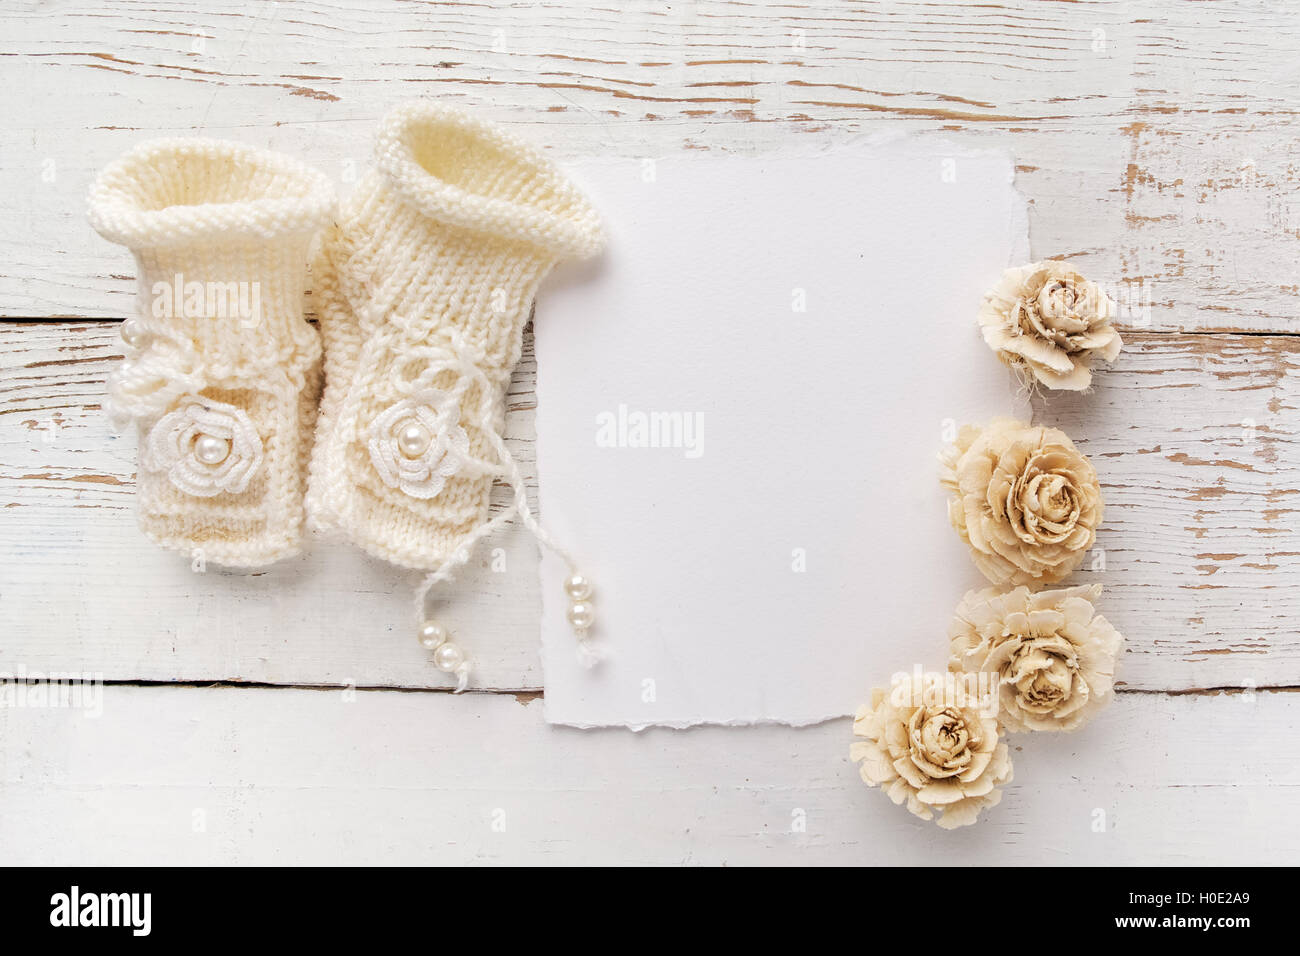 New Born Or Baptism Greeting Card Blank With Baby Girl Shoes And